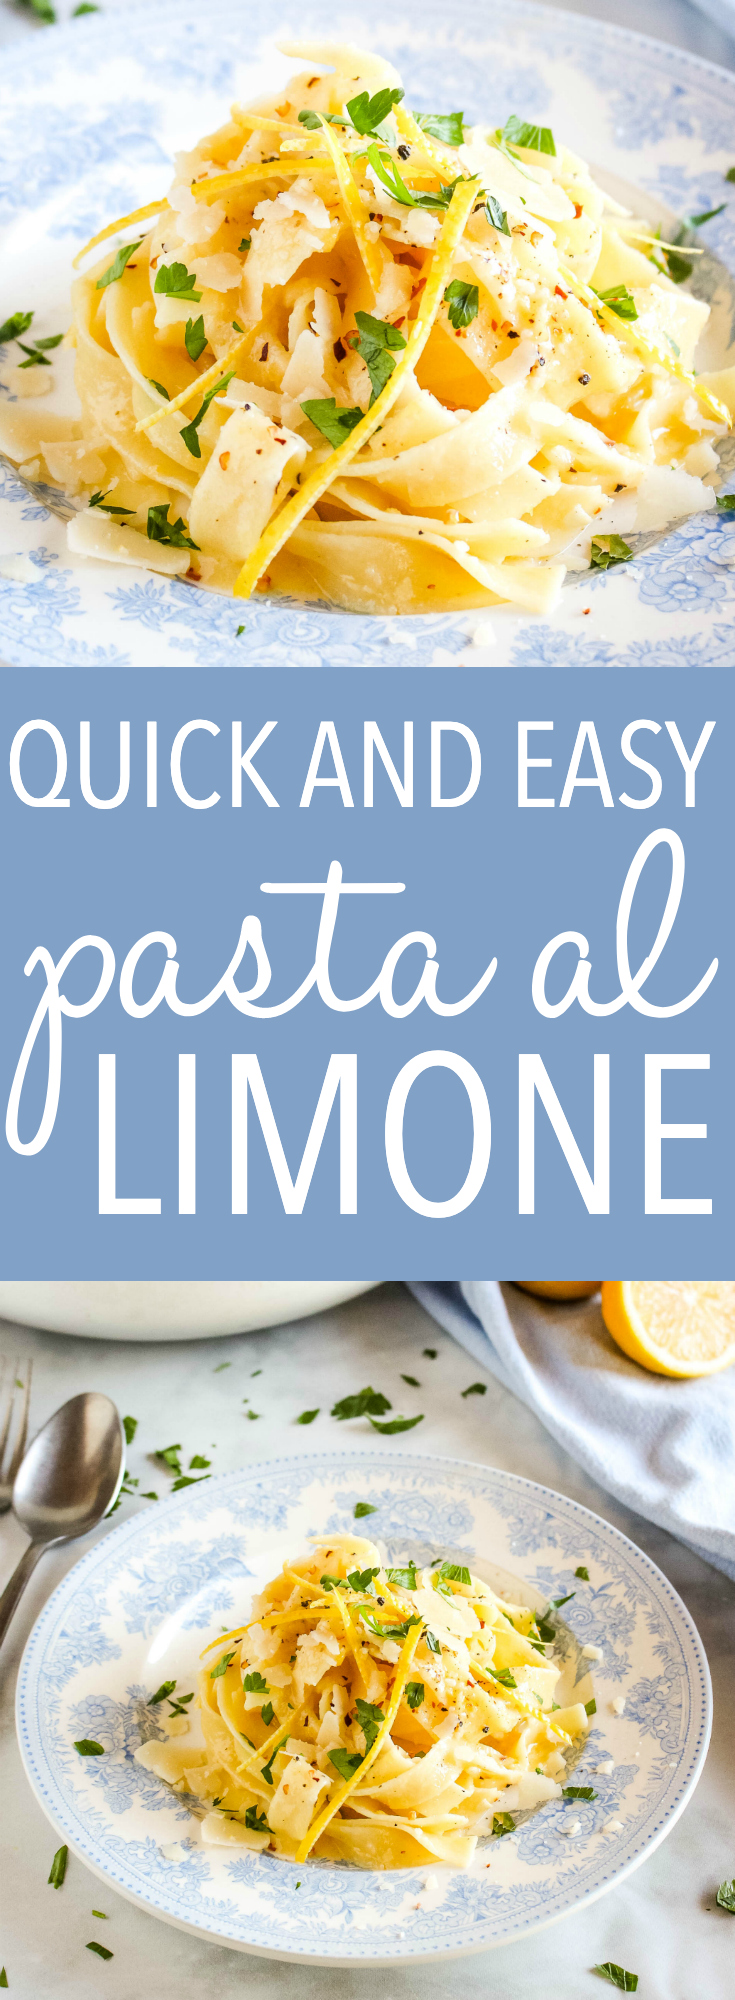 This Quick and Easy Pasta al Limone is a simple restaurant-quality weeknight meal with bright, simple flavours. Made with fresh lemons, butter and Parmesan cheese. Recipe from thebusybaker.ca! #lemon #pasta #italian #pastaallimone #homemade #restaurantquality #italy via @busybakerblog